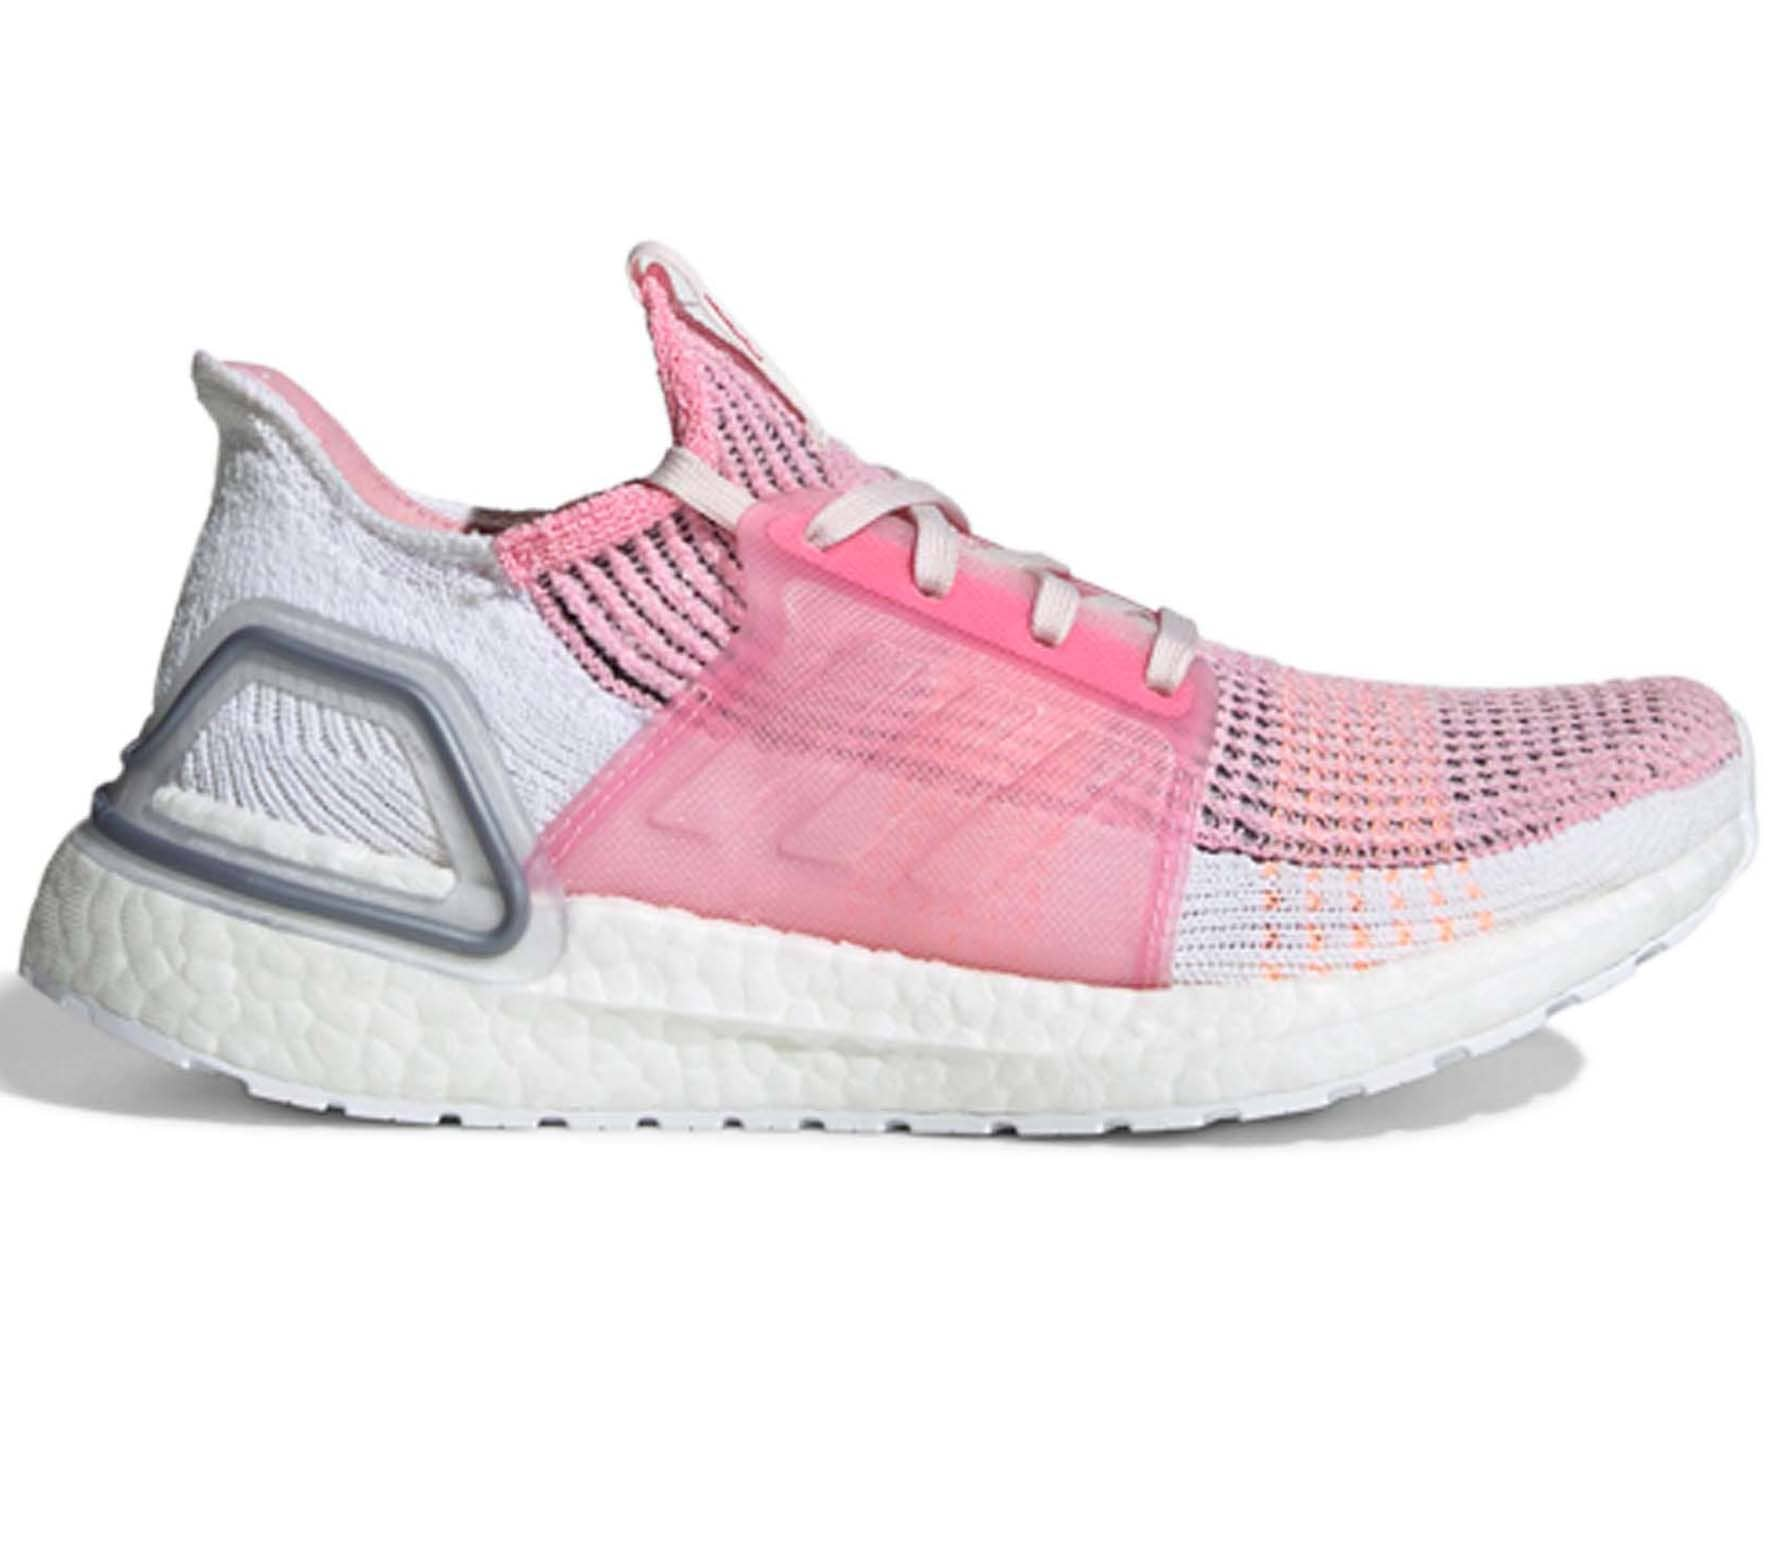 100% authentic 147e6 6d4e6 adidas - Ultraboost 19 womens running shoes (pink)